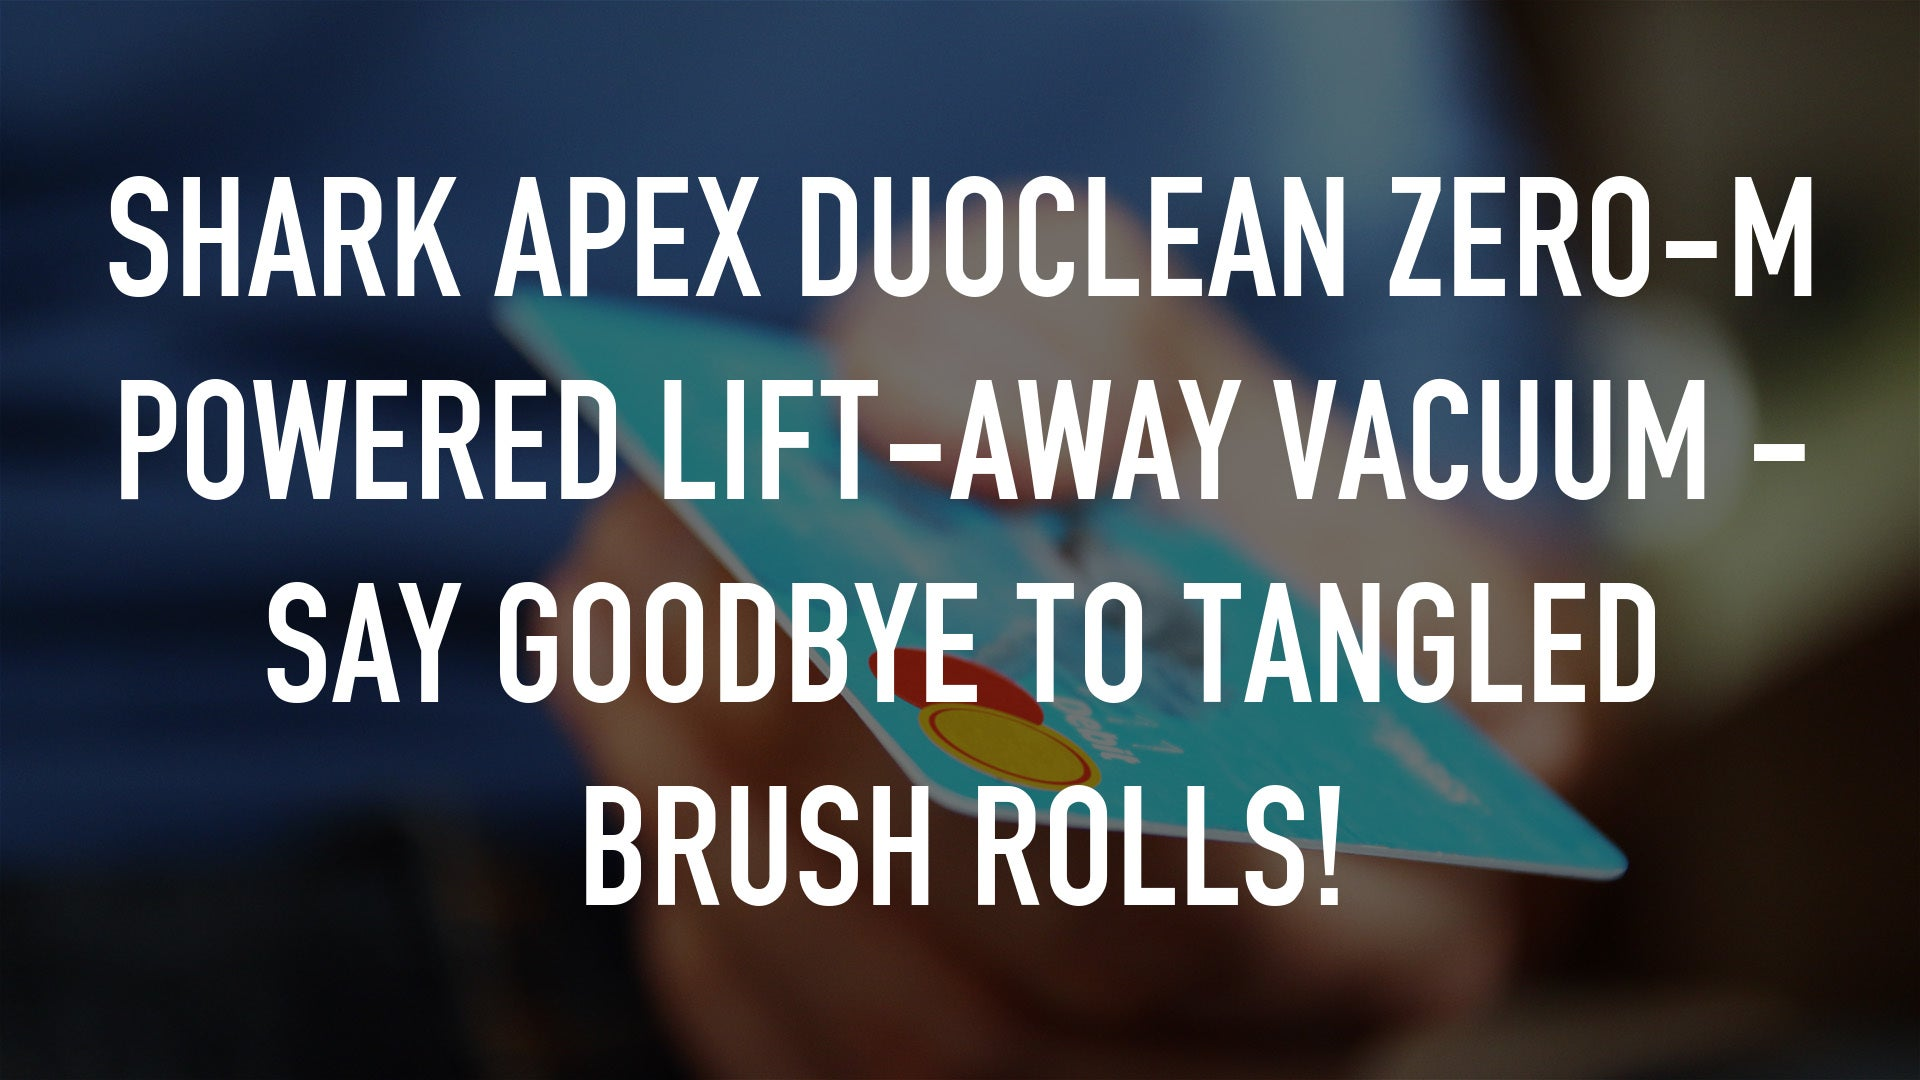 Shark APEX DuoClean Zero-M Powered Lift-Away Vacuum - Say Goodbye to Tangled Brush Rolls!